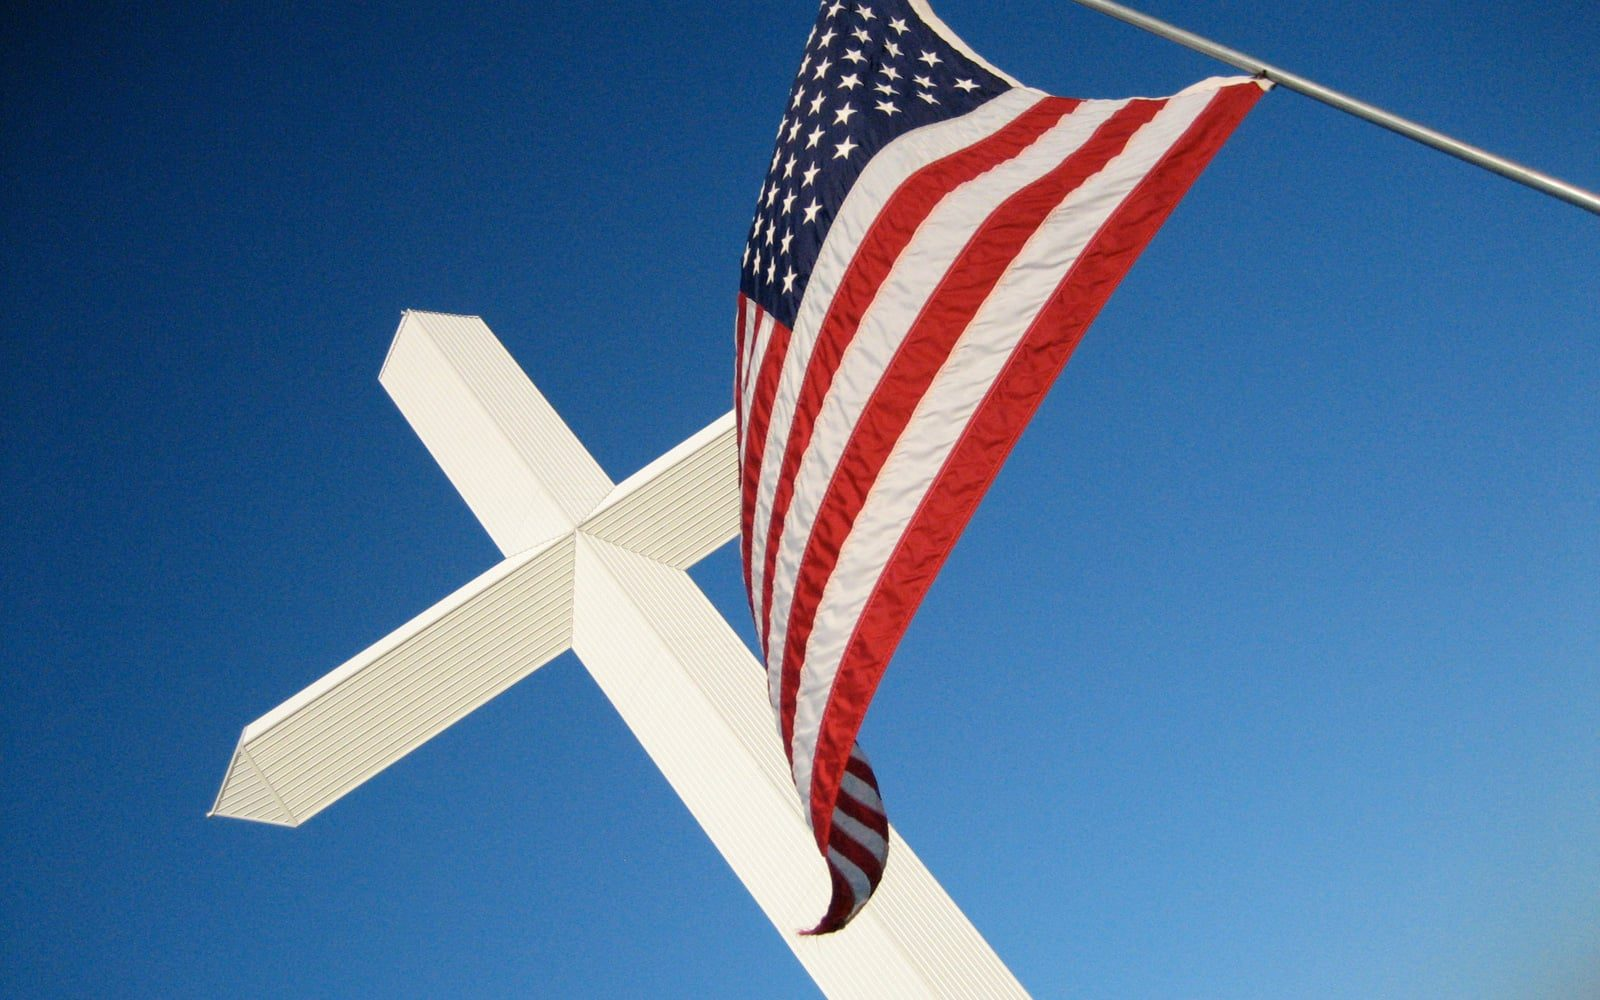 The Cross and the Flag